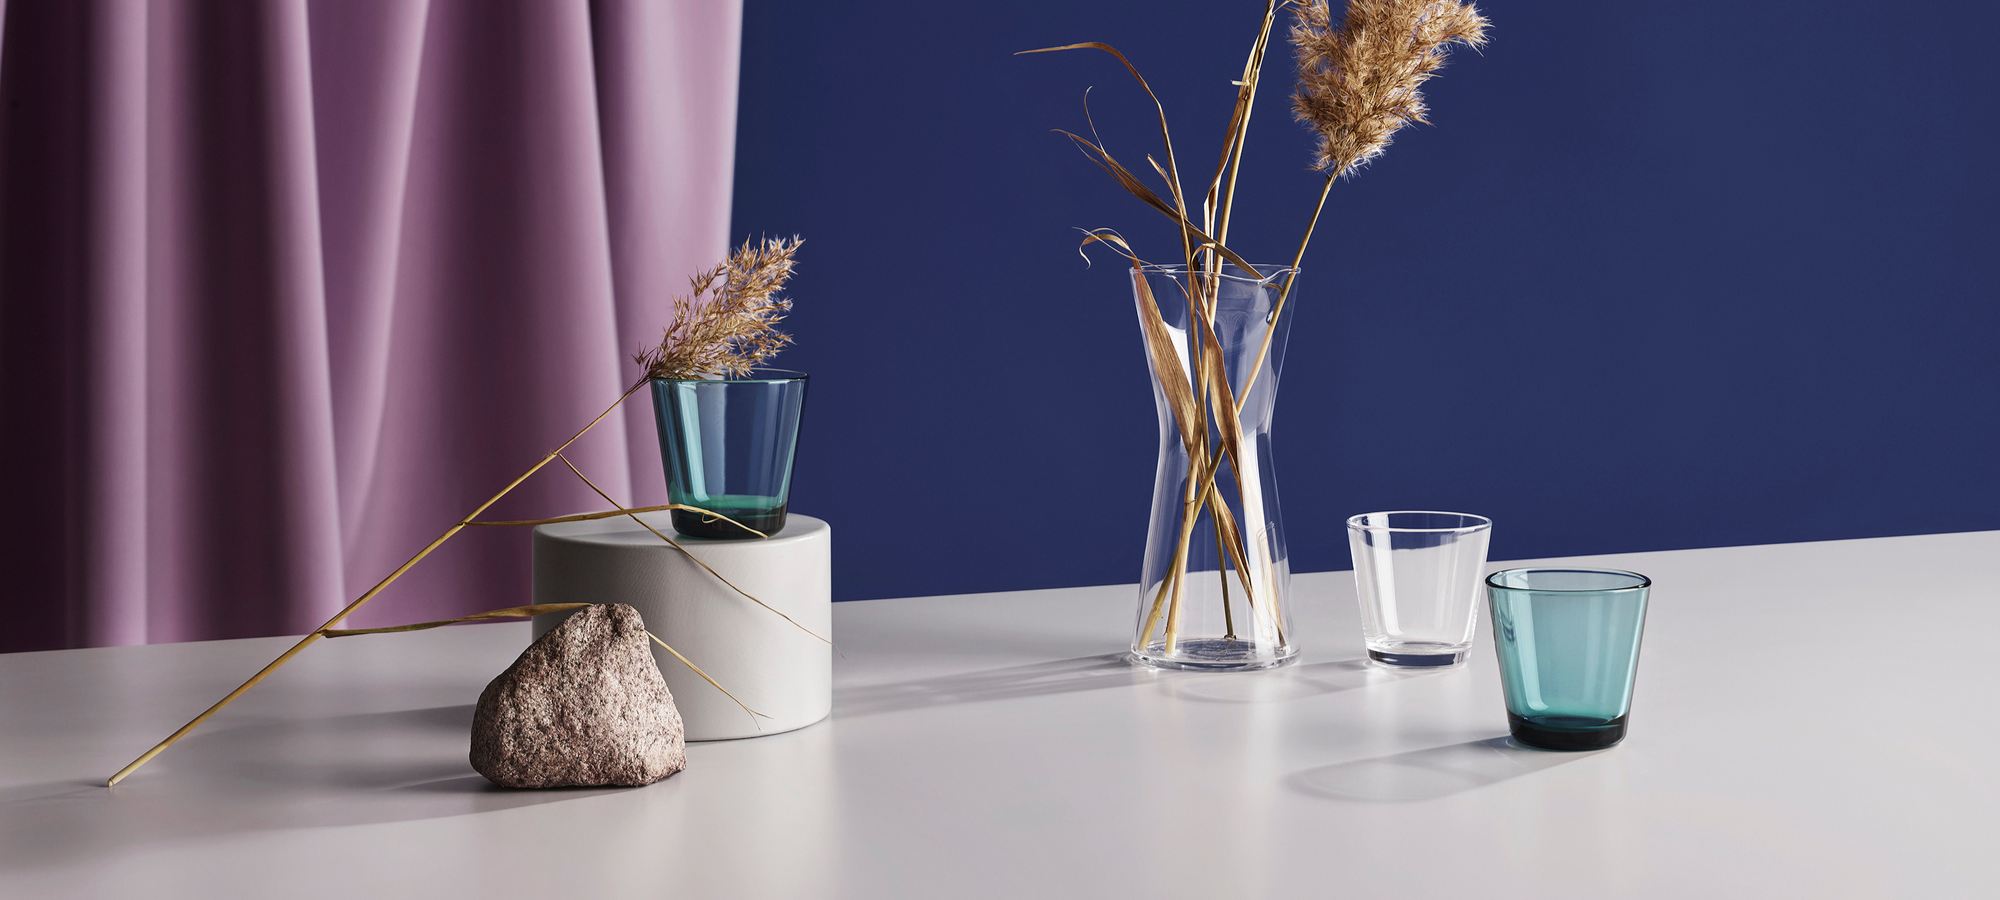 Iittala KARTIO collection inspiration